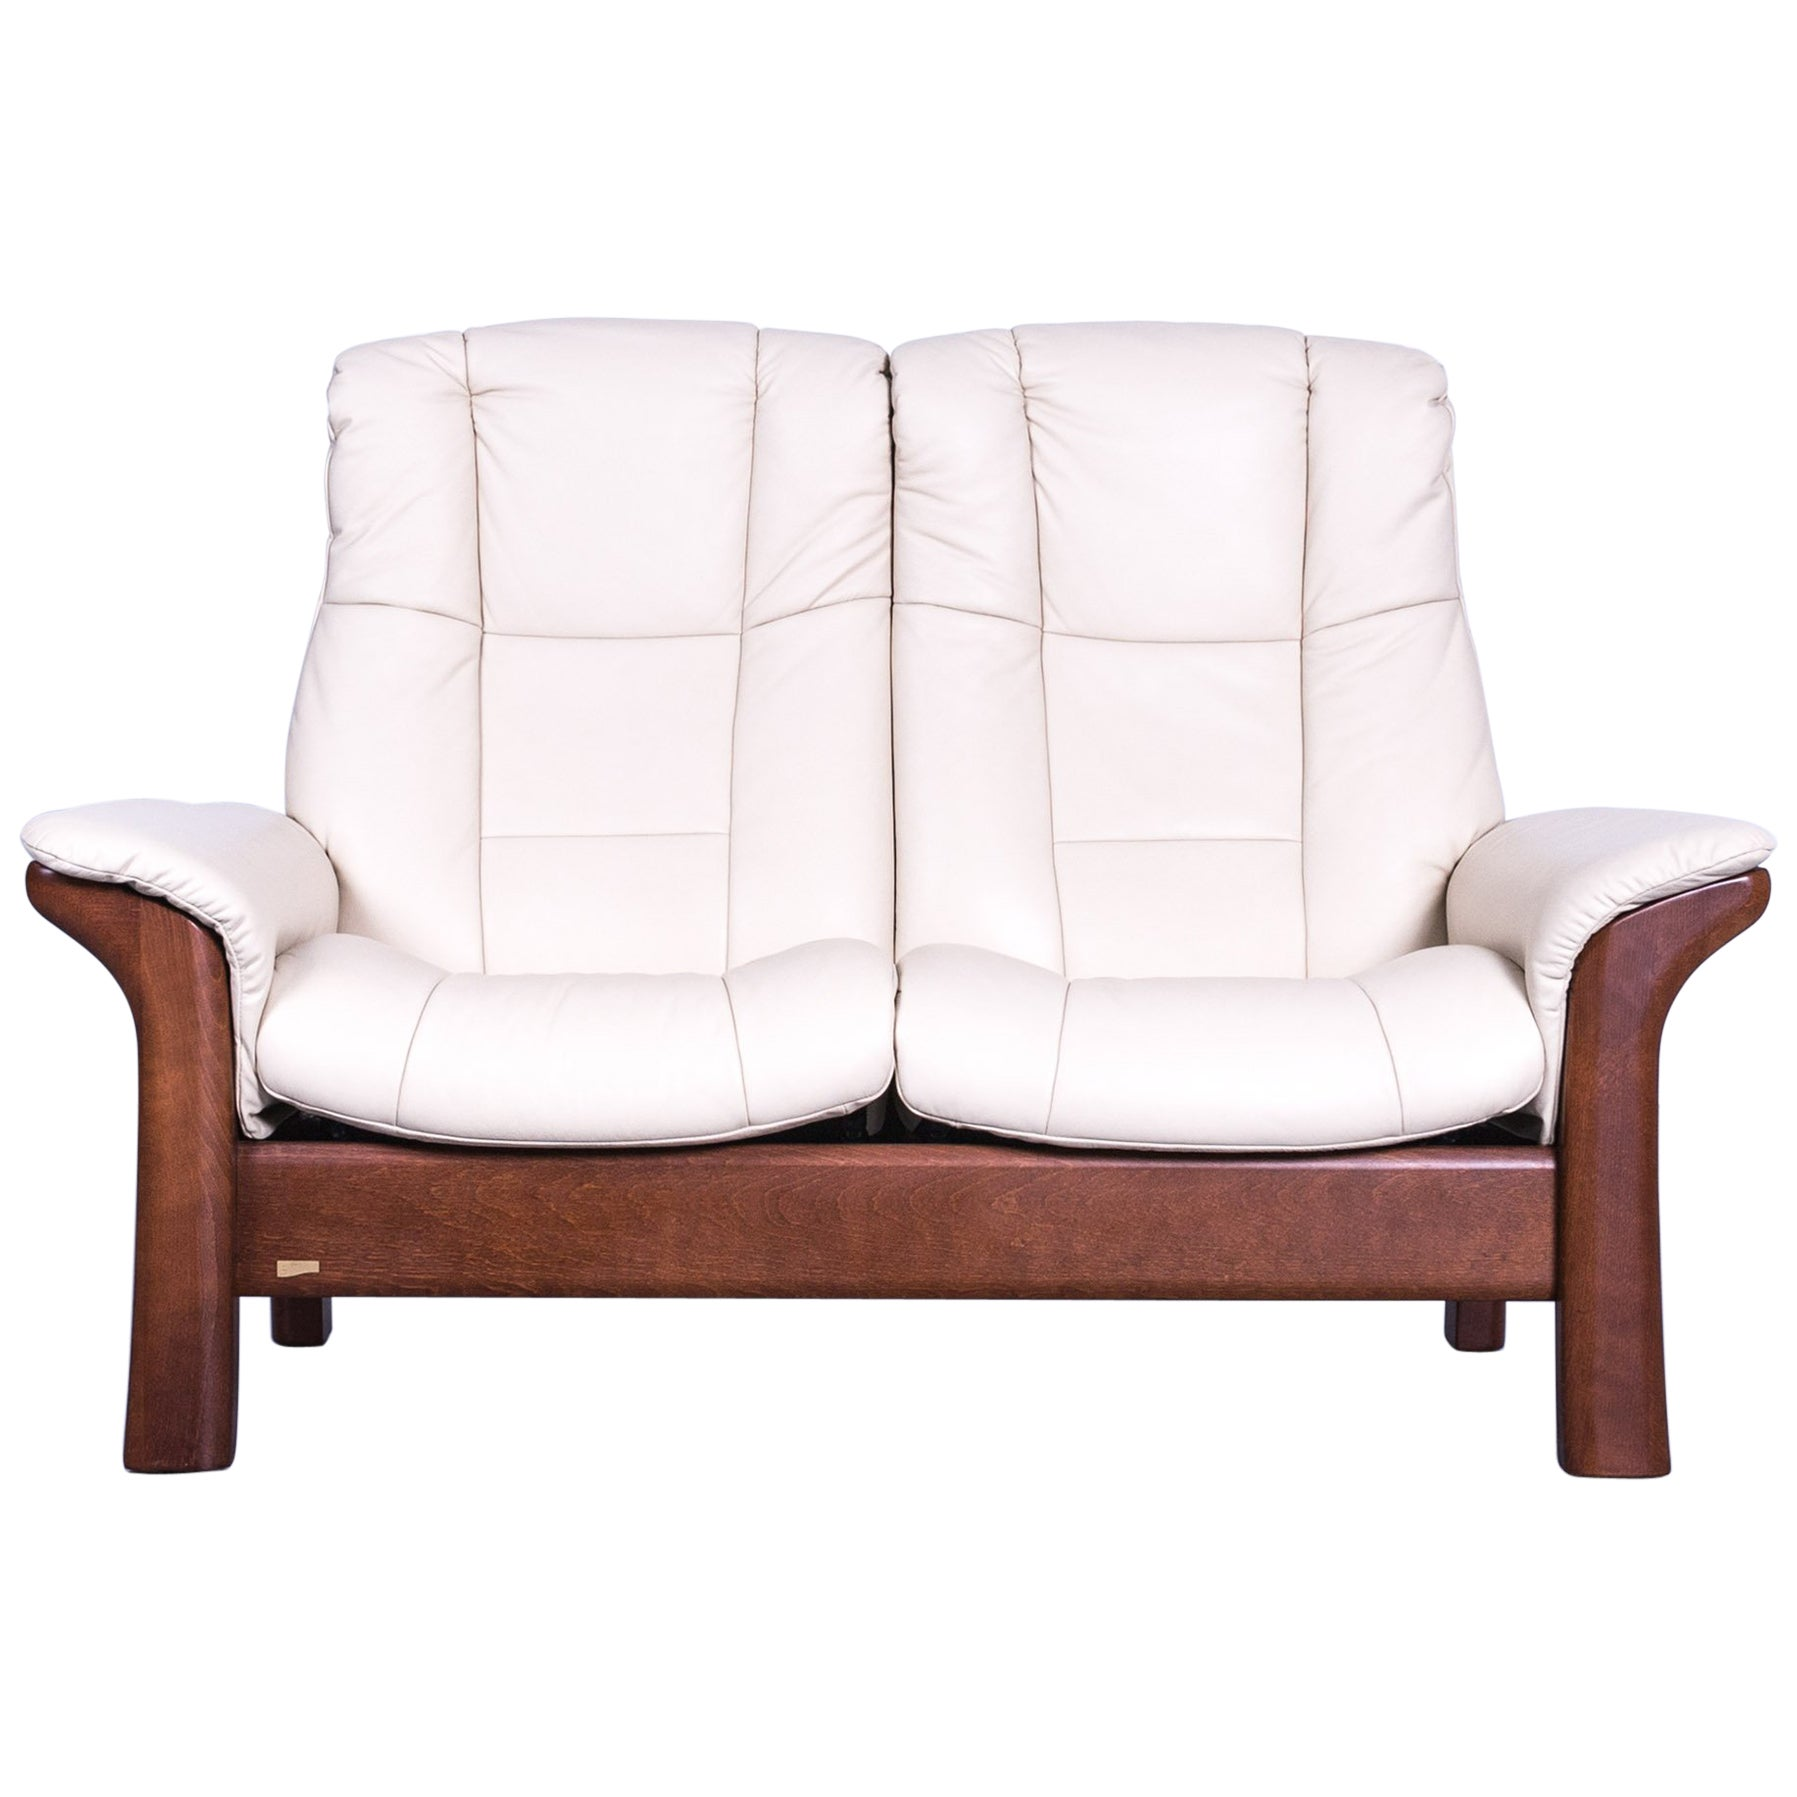 Relax Sofa Ekornes Stressless Relax Sofa Crème Leather Tv Recliner Two Seat